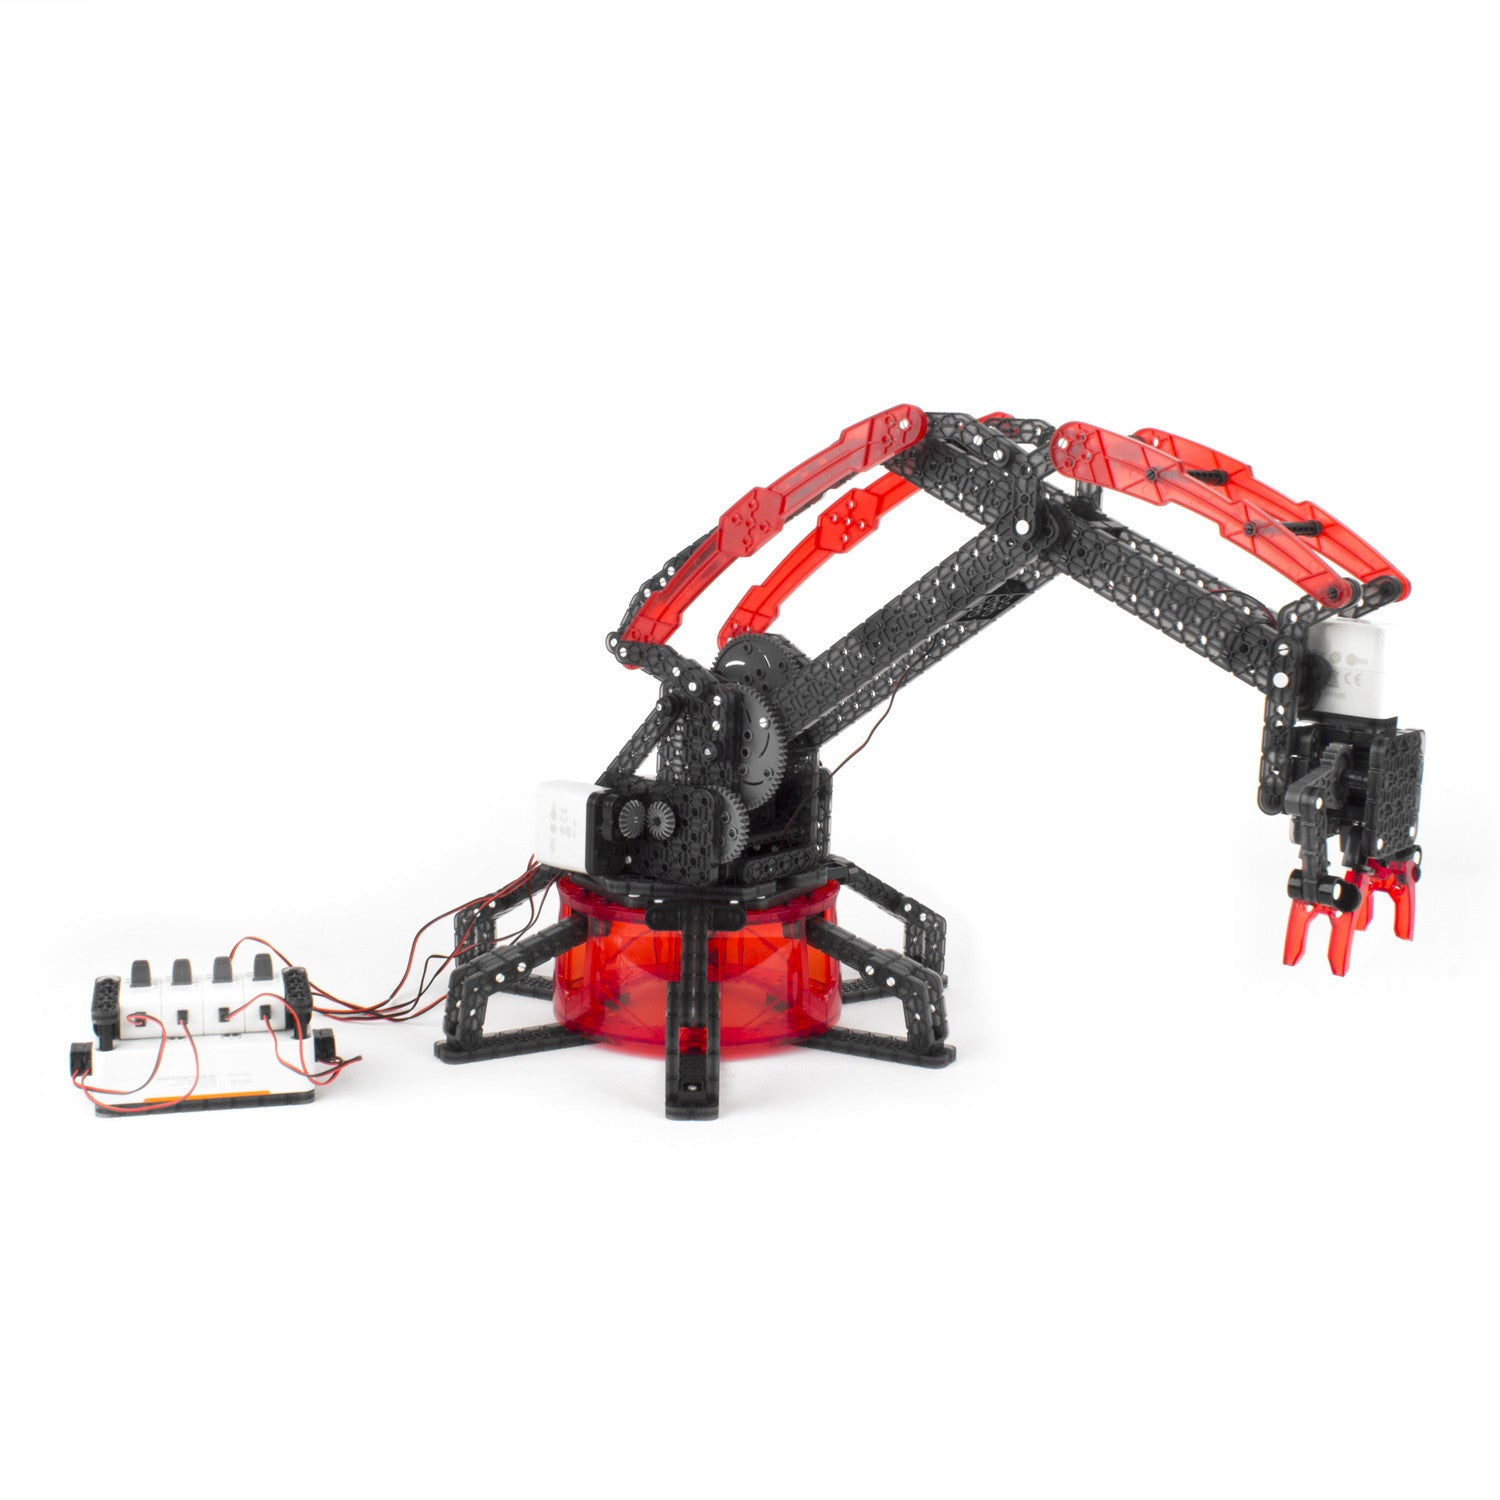 VEX Robotics Motorized Robotic Arm